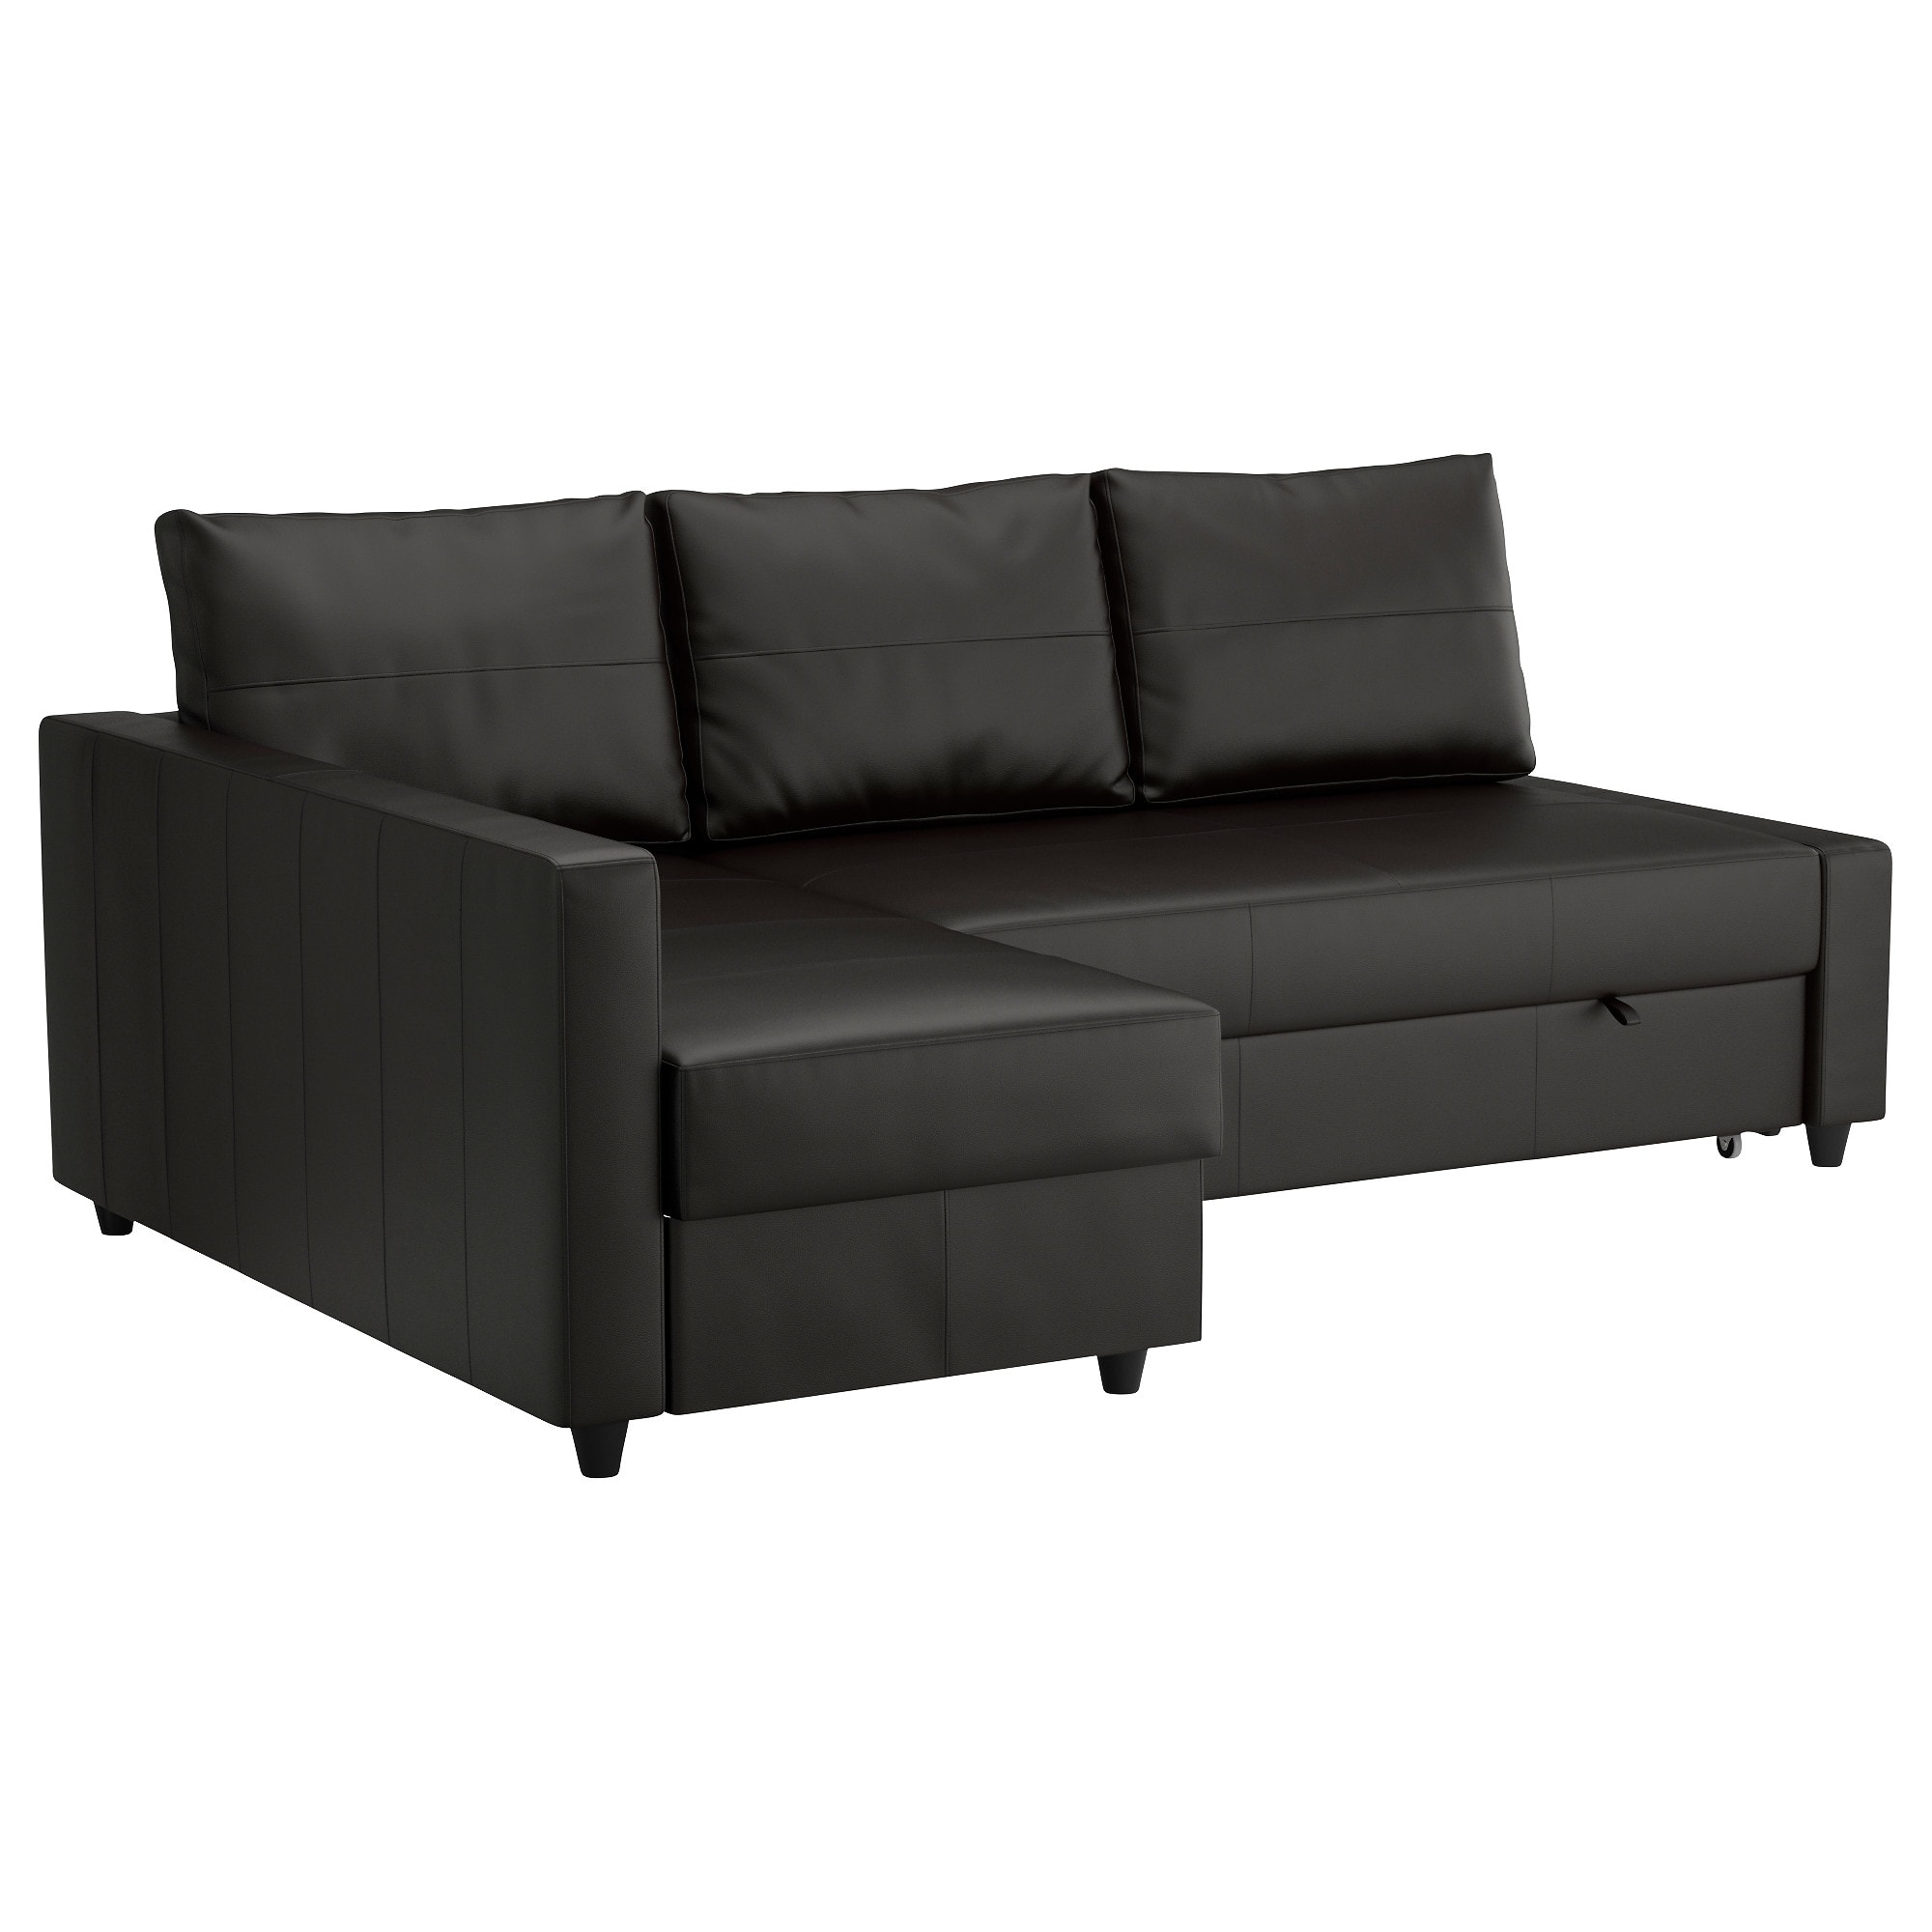 Sofa Bed Chairs For Newest Friheten Corner Sofa Bed With Storage Bomstad Black – Ikea (View 13 of 20)